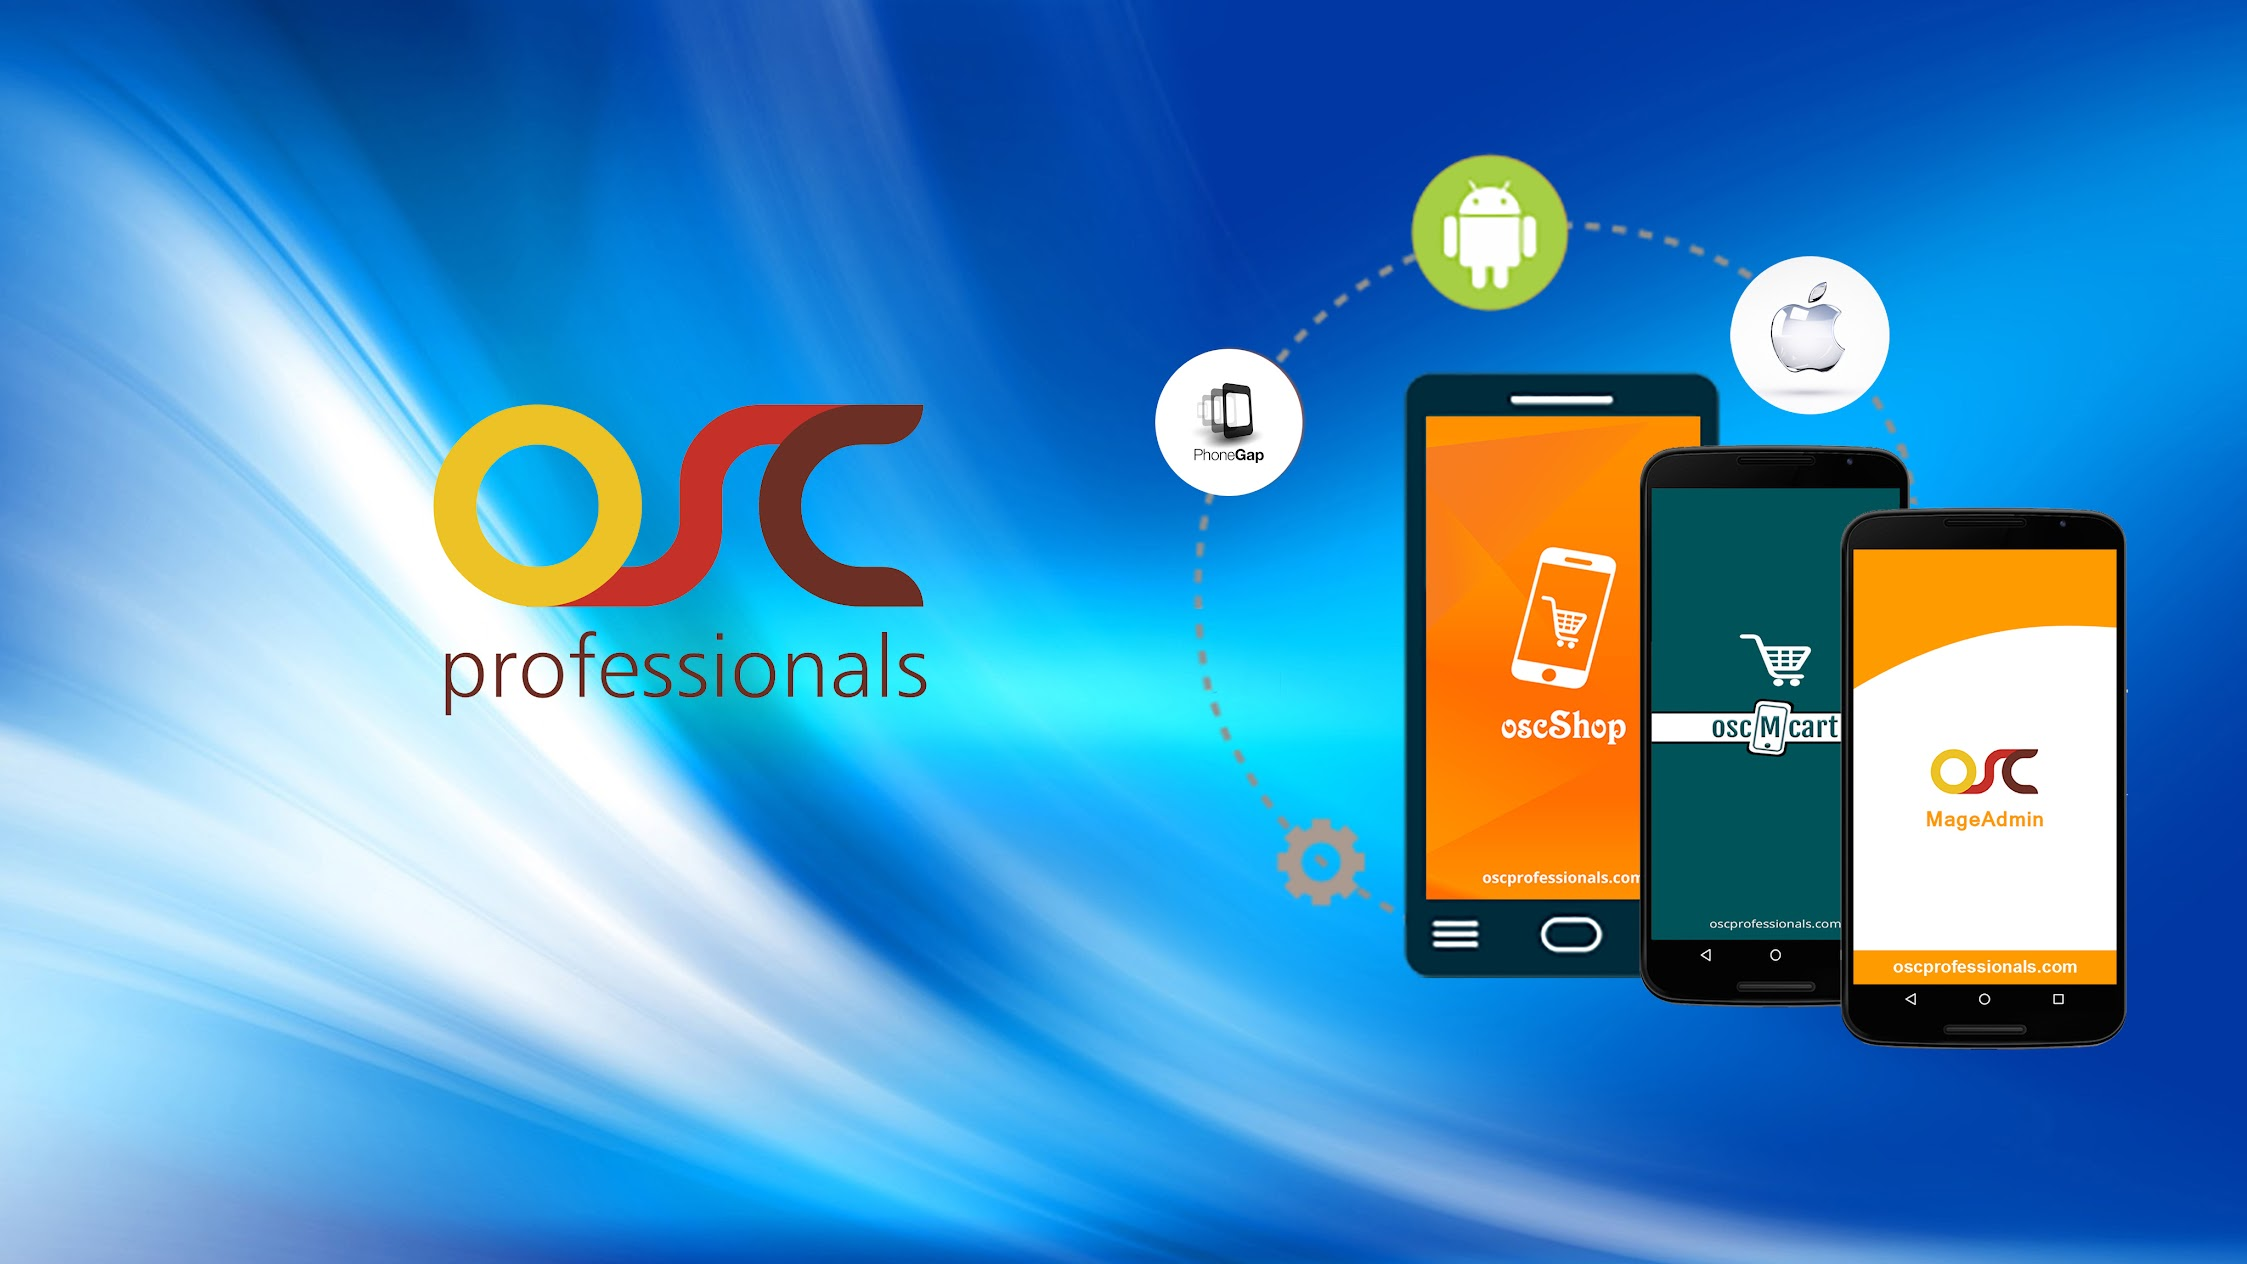 Oscprofessionals